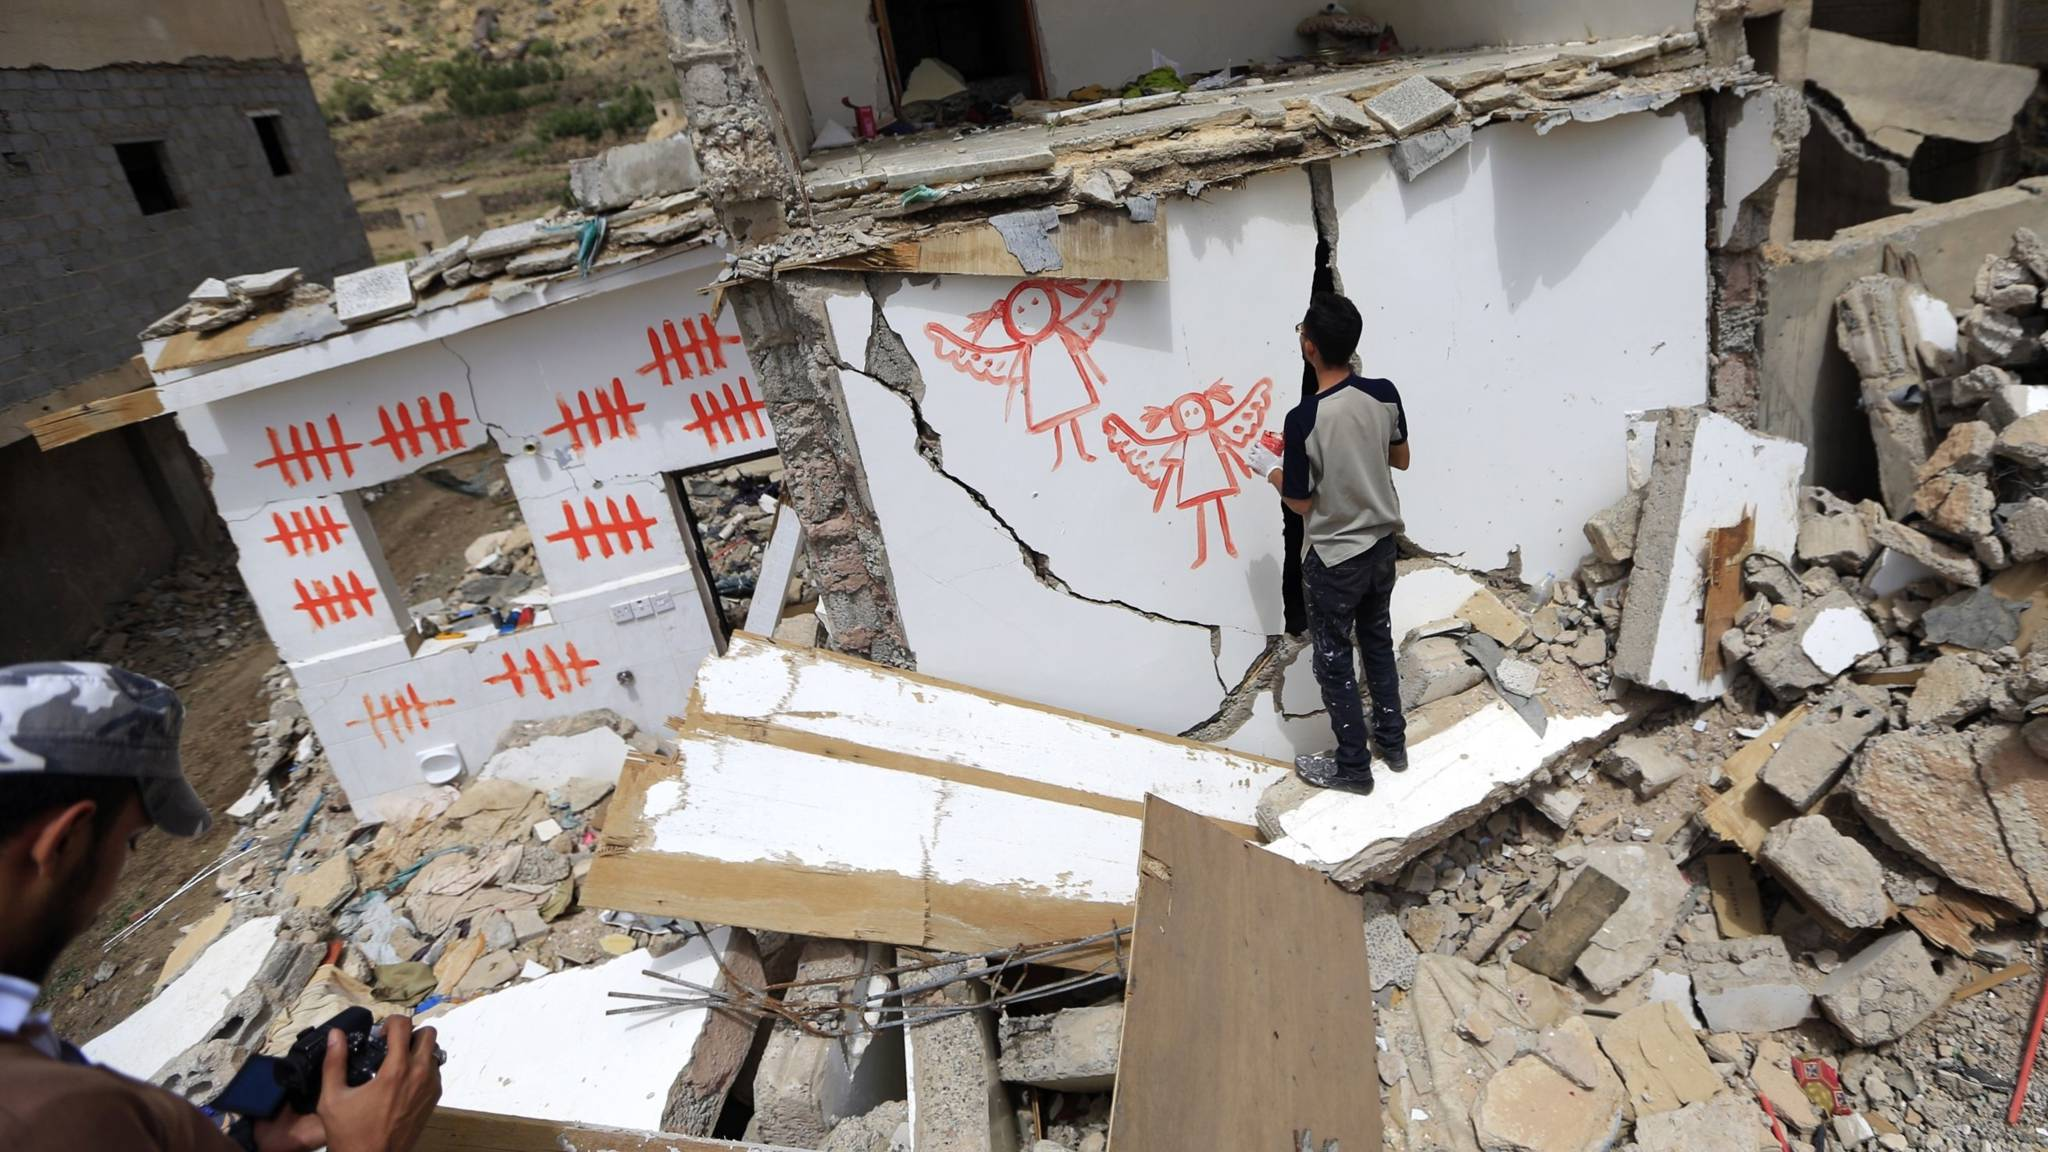 Graffiti on ruins in Yemen caused by Saudi bombing, AFP photo